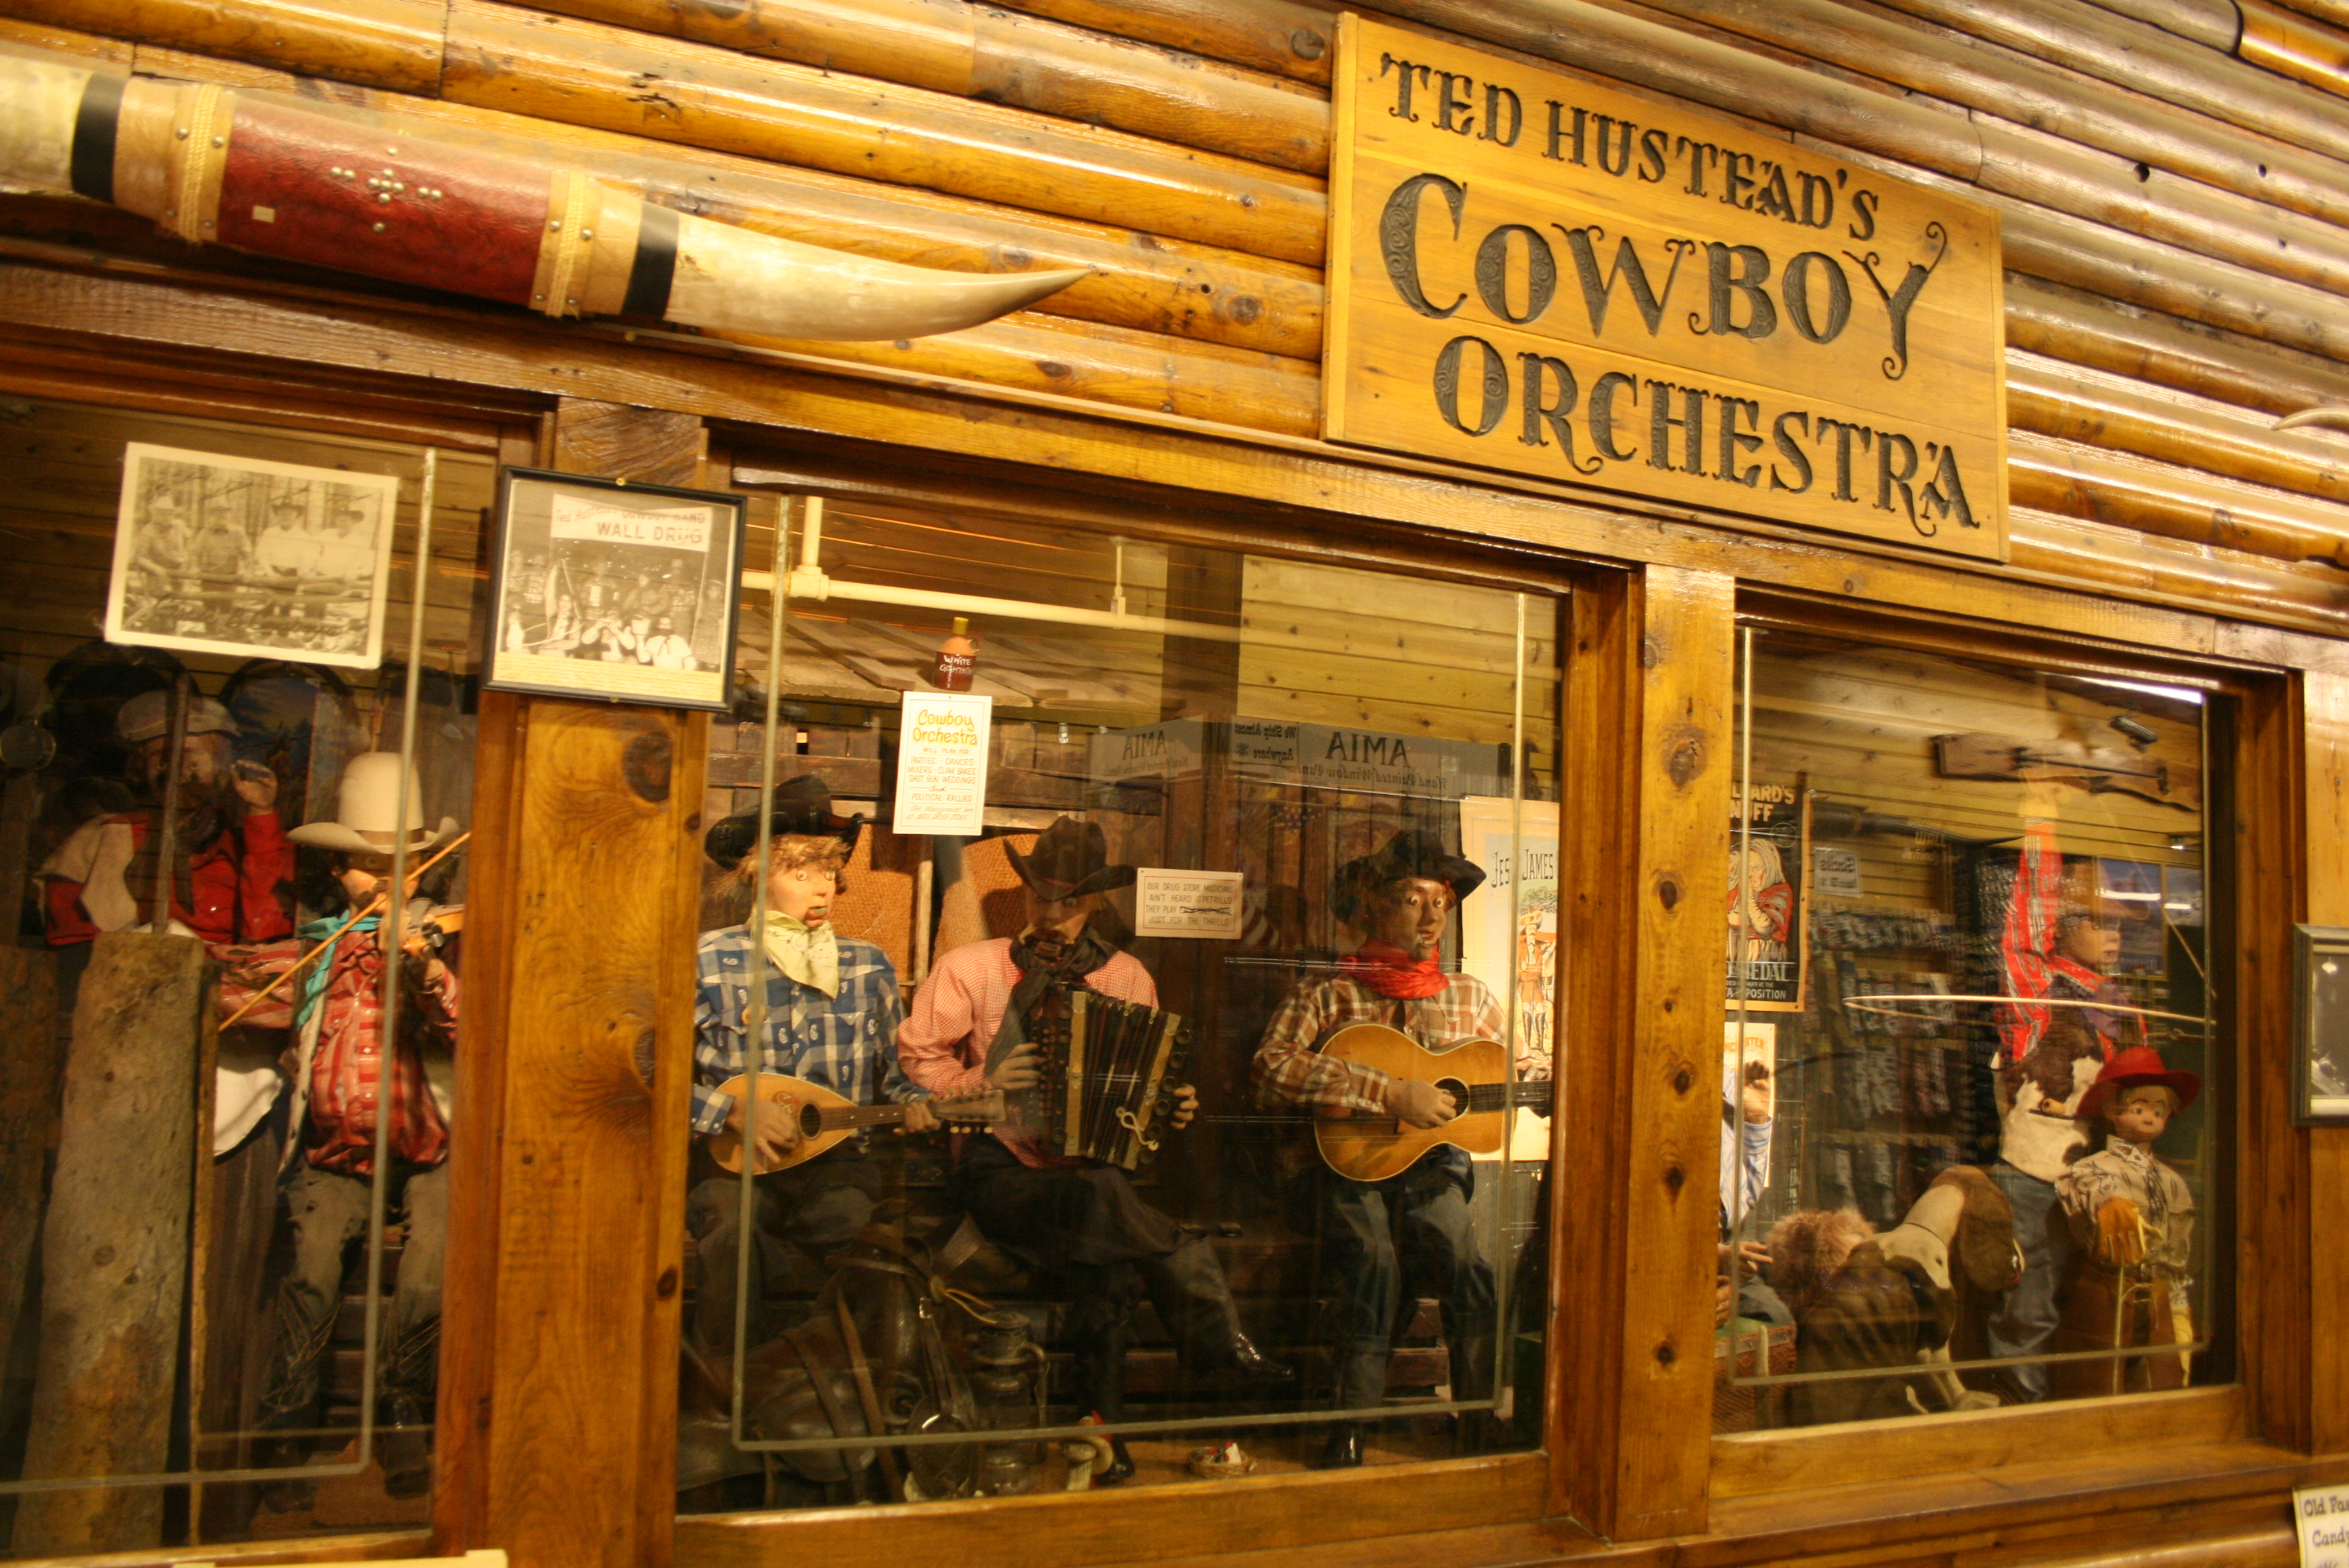 File:Wall Drug Cowboy Orchestra.jpg - Wikimedia Commons